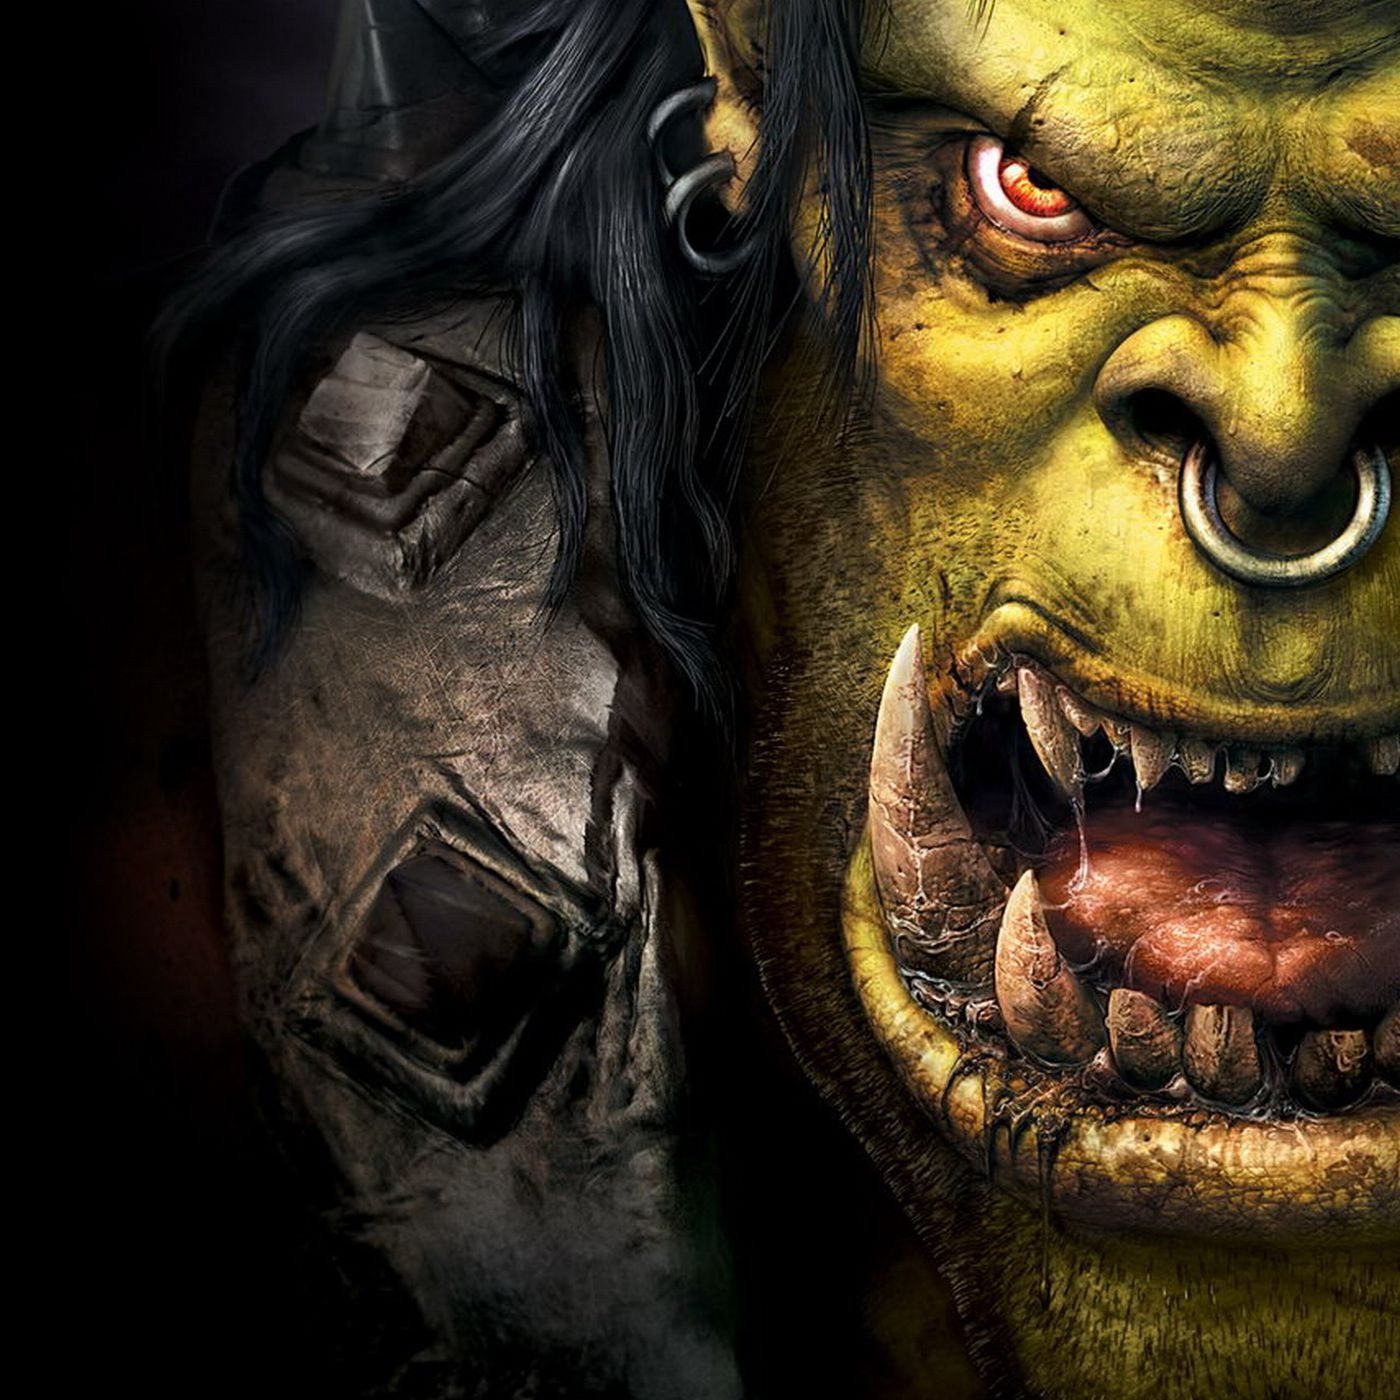 Warcraft 3 Characters Invade Starcraft 2 Polygon